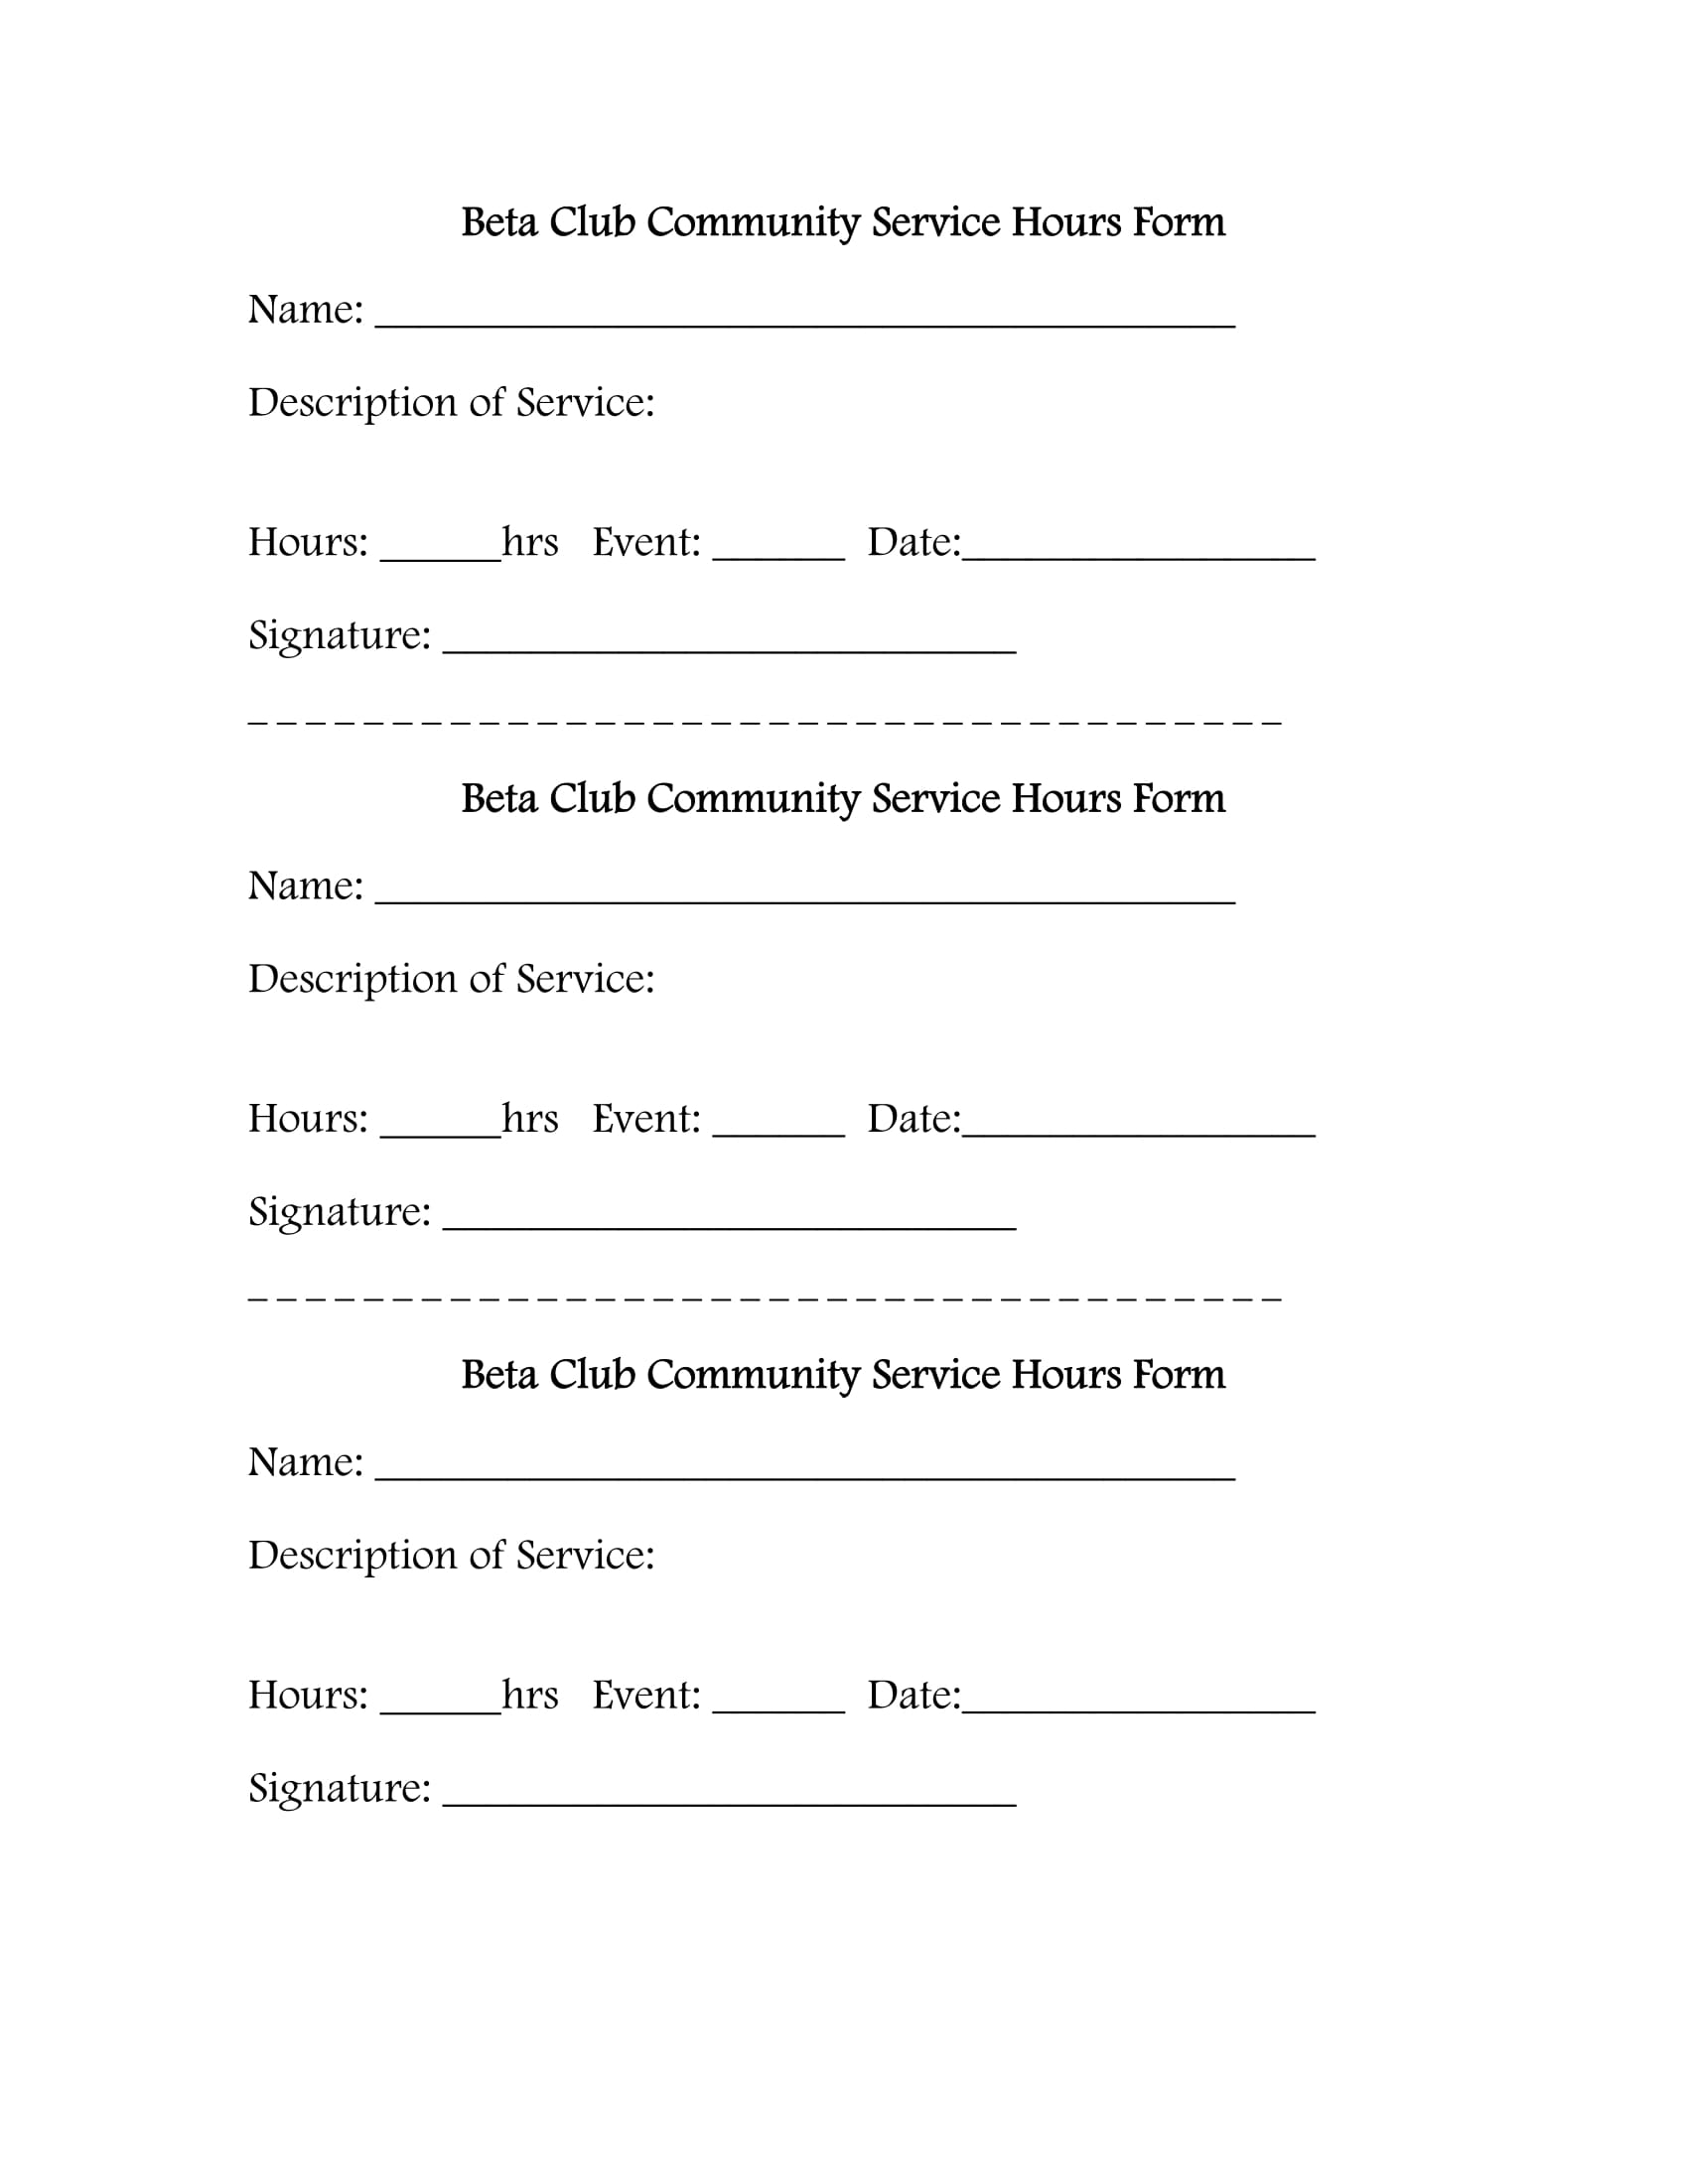 beta club service hours form 1